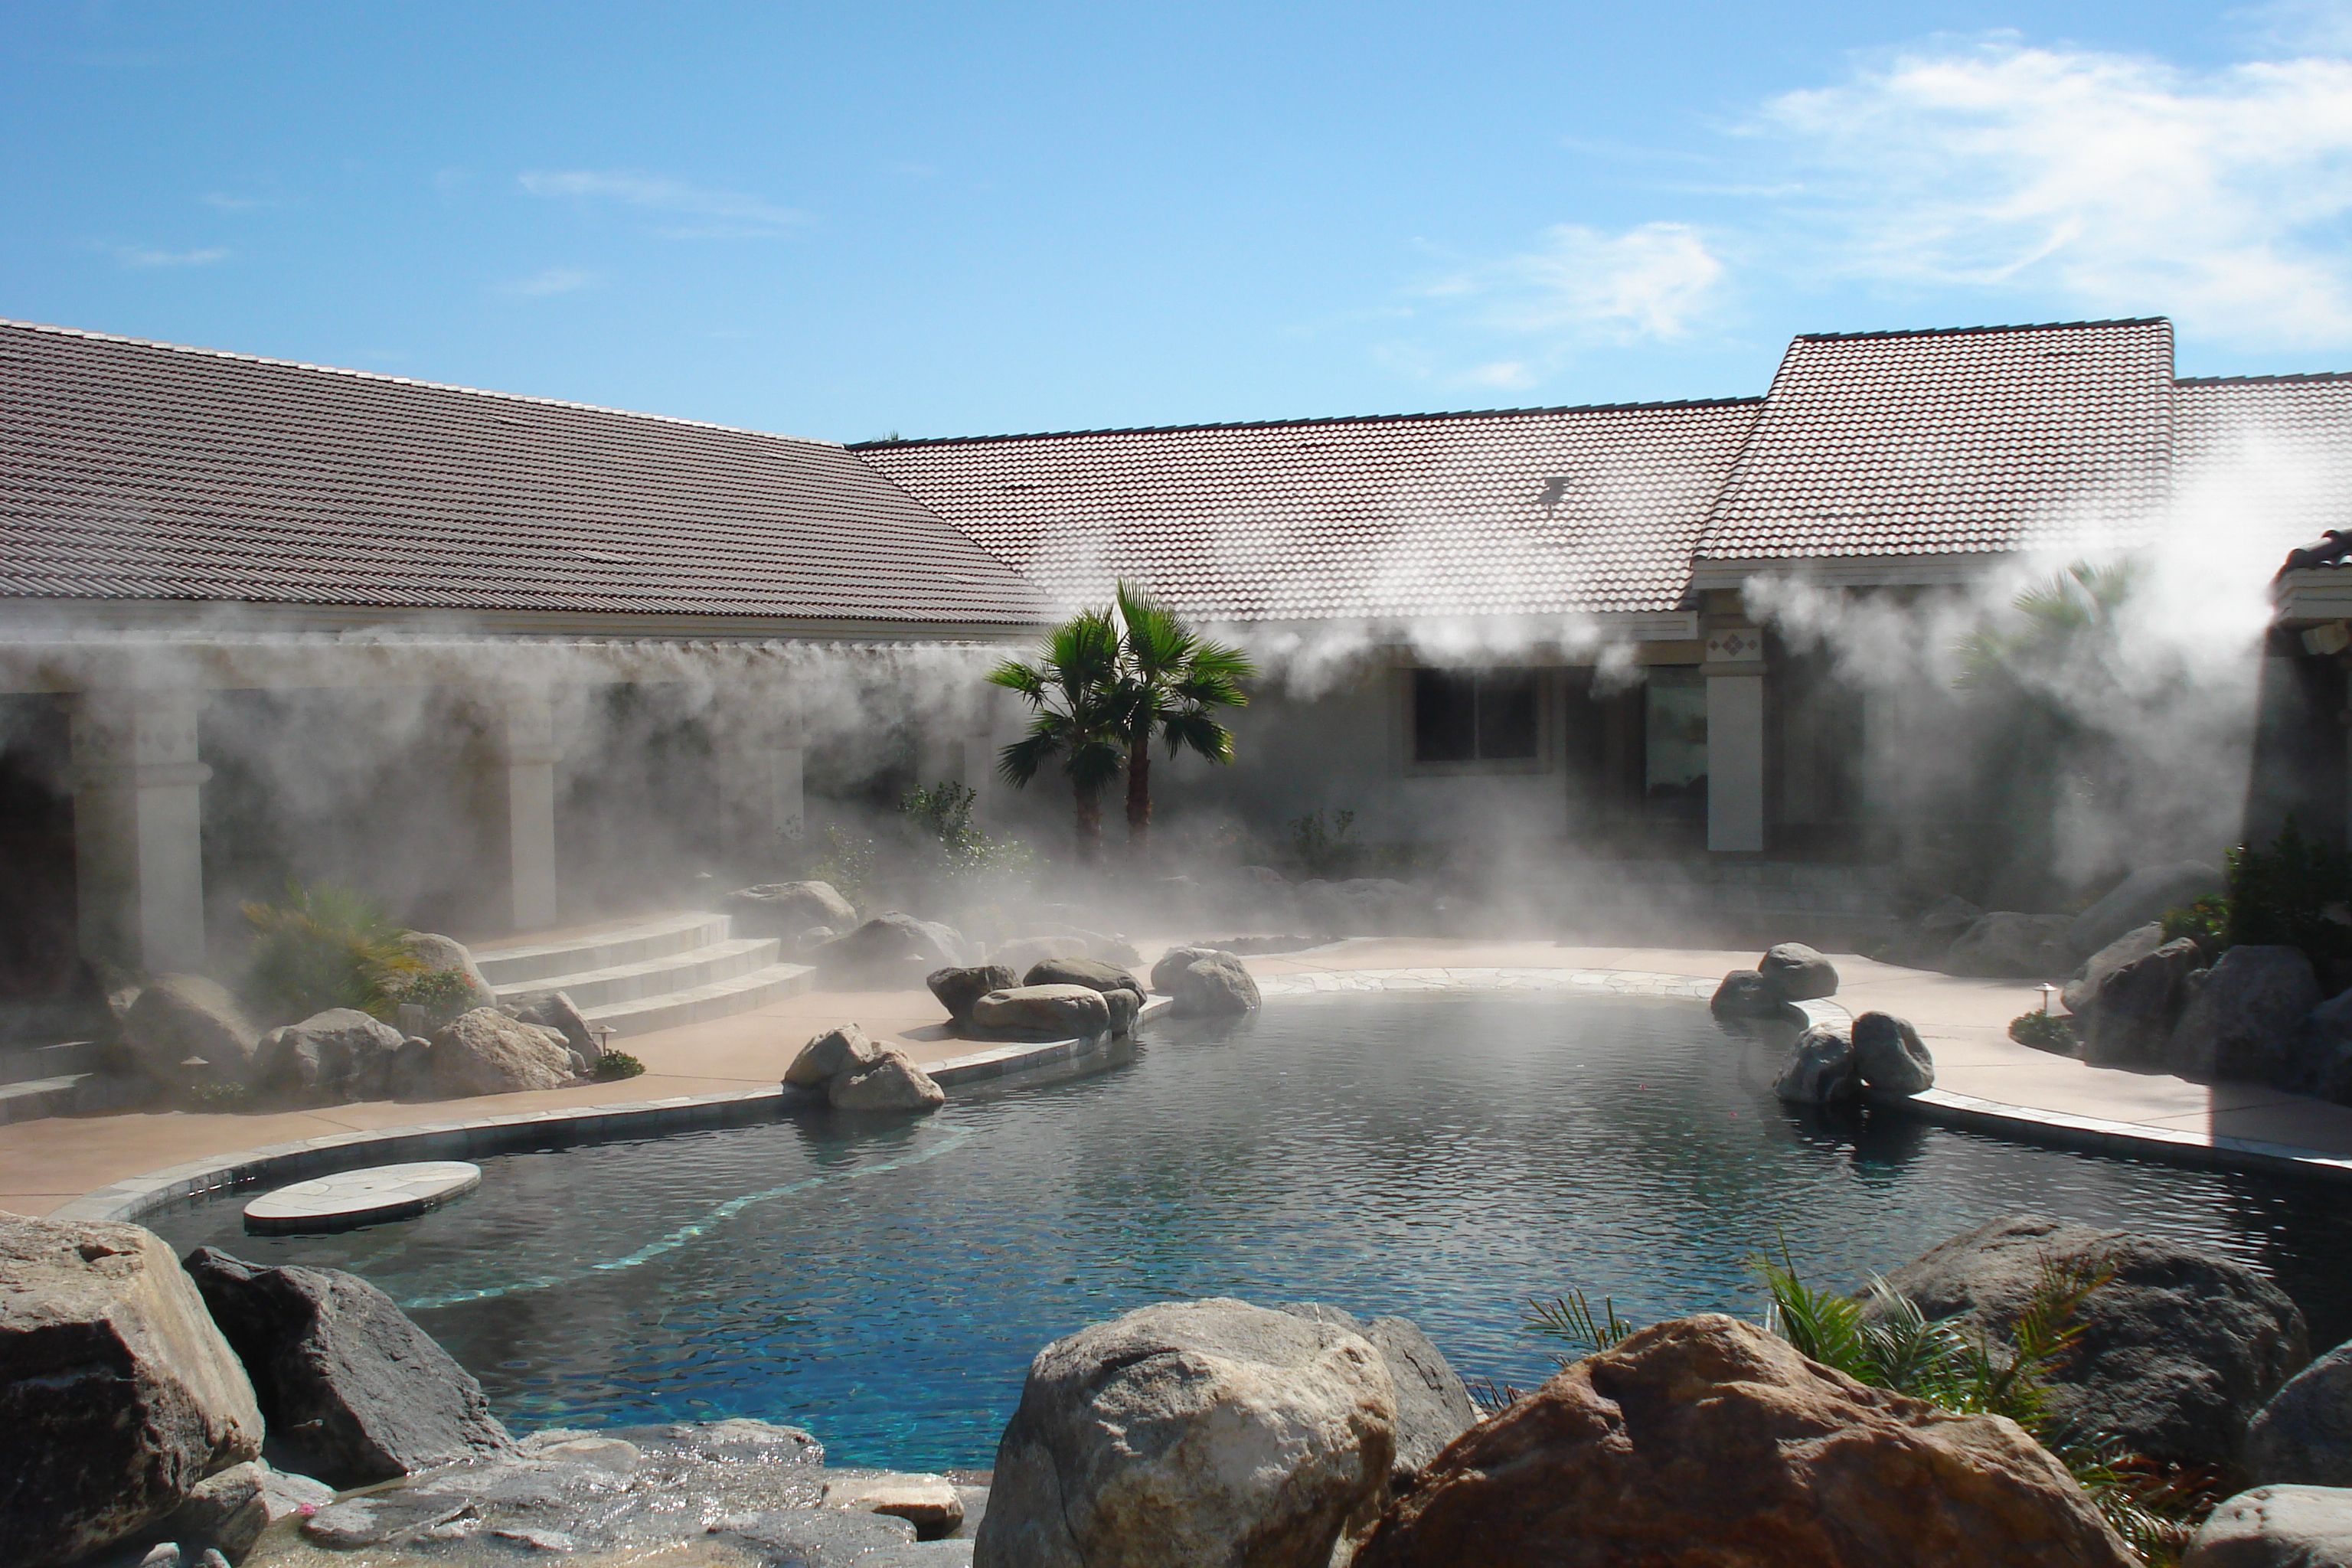 A Fogging or Cooling System Can Help You Make the Most of Your Private or Commercial Oasis